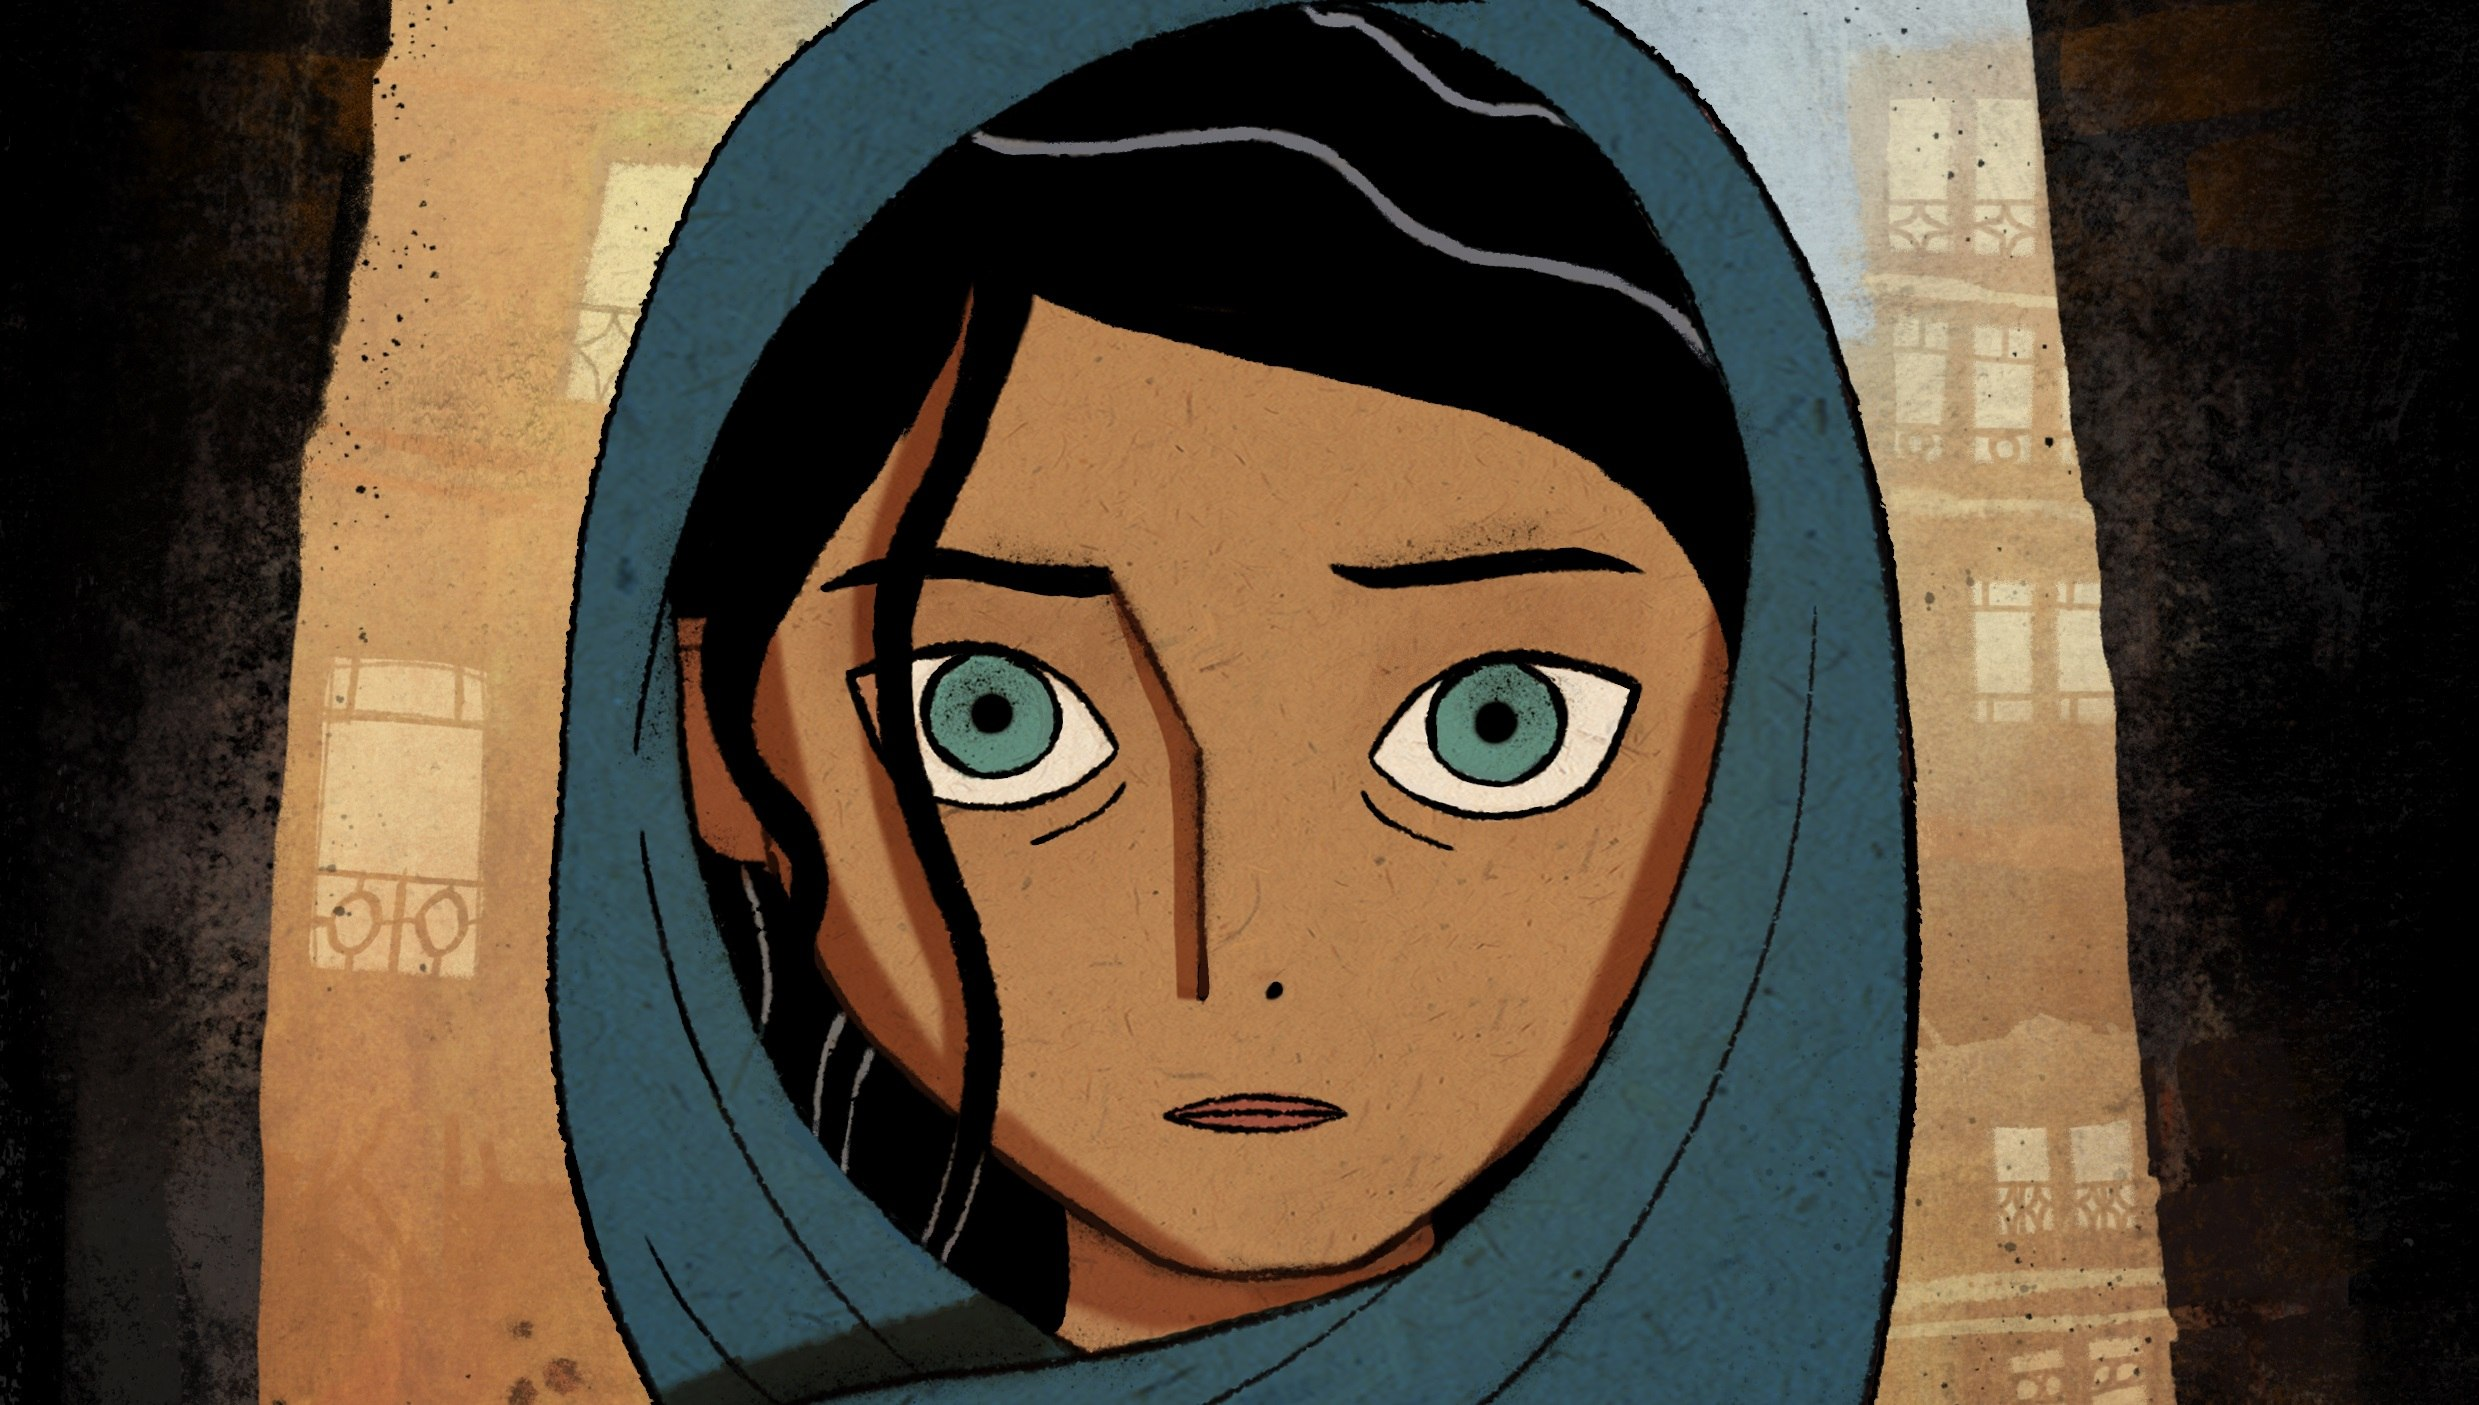 New Trailer for the Angelina Jolie-Produced Film, The Breadwinner